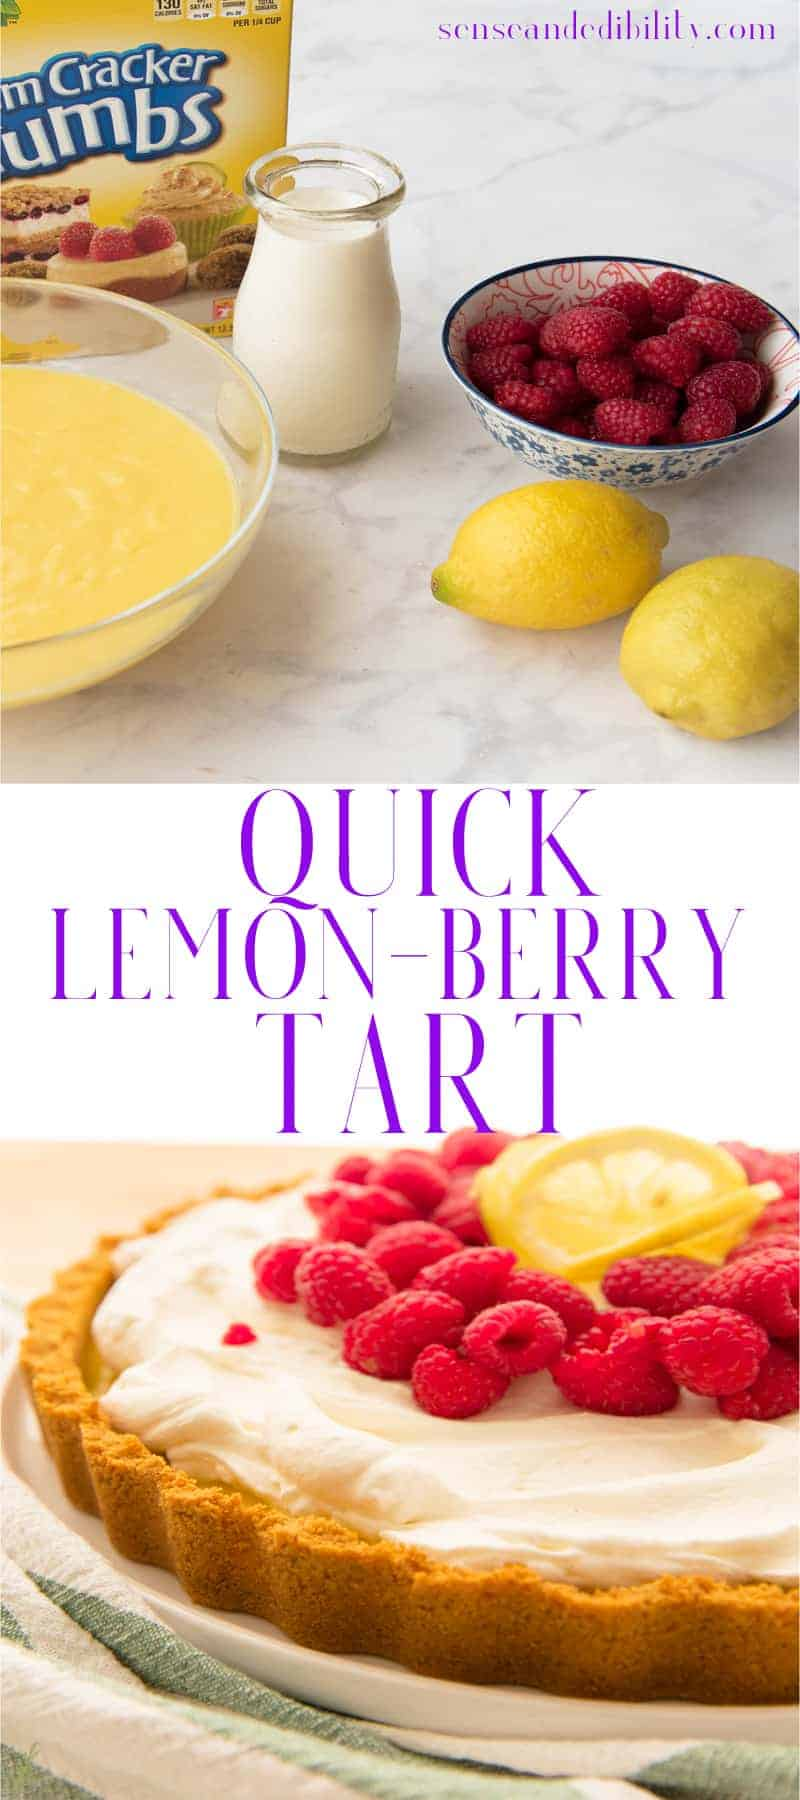 Sense & Edibility's Quick Lemon-Berry Tart Pin